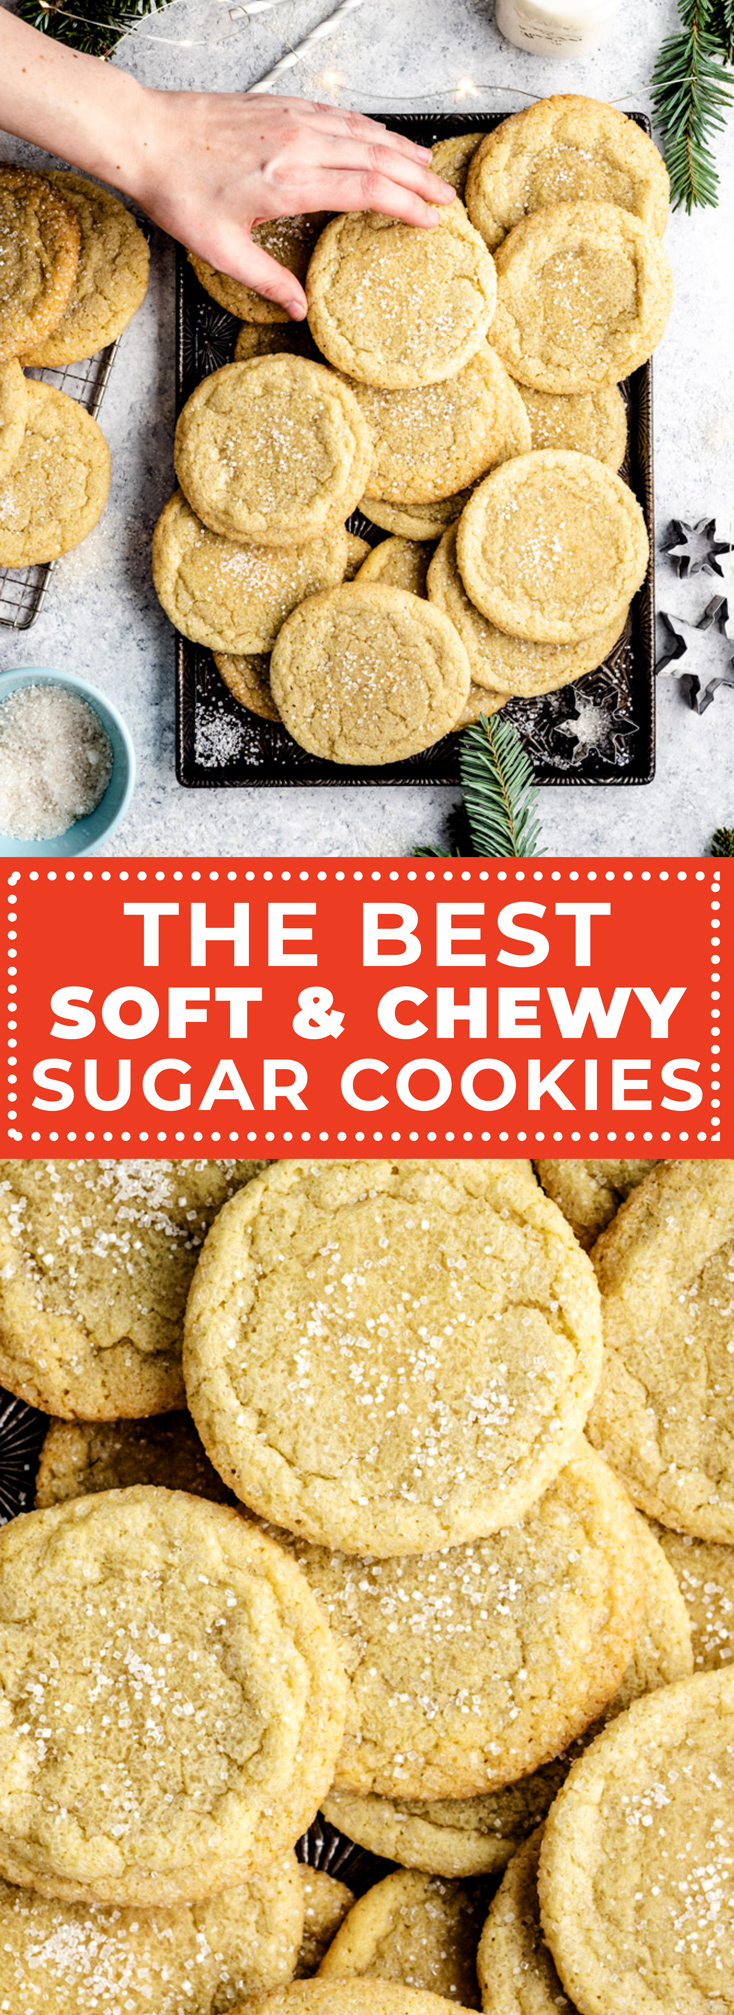 If you're looking for the ultimate recipe for soft and chewy sugar cookies, you've come to the right place. Not only are these sugar cookies fantastically buttery, tender, and doughy; but they also stay soft for days on end. They're also incredibly easy to make and require no rolling out! | hostthetoast.com